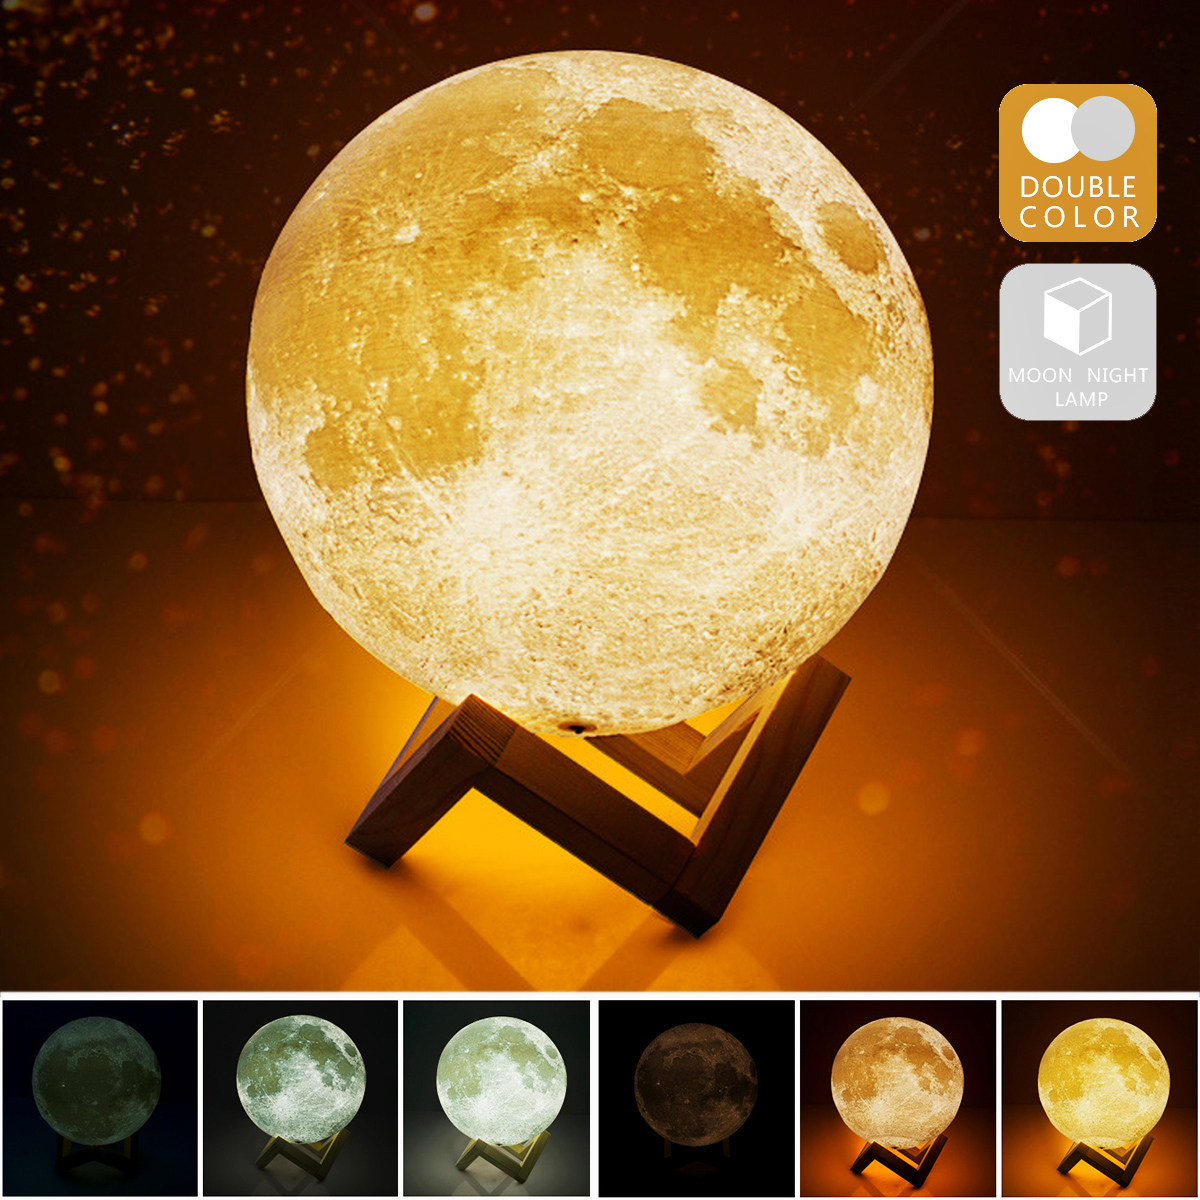 IVYSHION 3D Print Moon Lamp USB Rechargeable 2 Color Touch Control Novelty Lighting Adjustable Moon Lamp Home Decoration